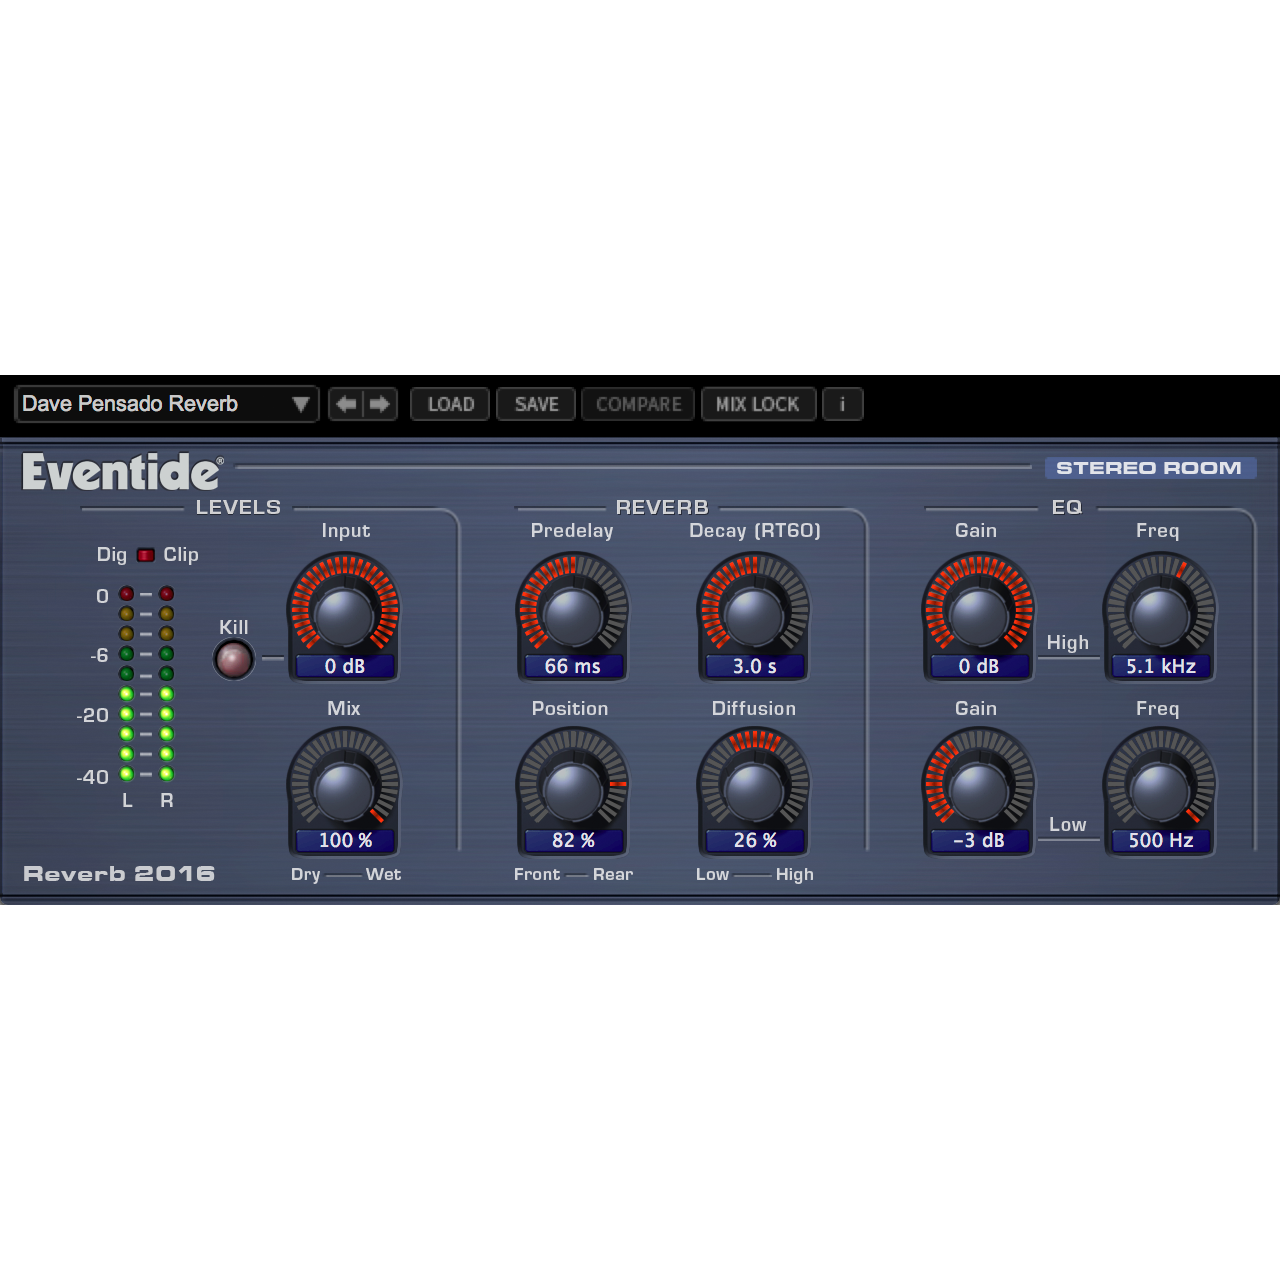 Eventide 2016 Stereo Room Plugins PluginFox